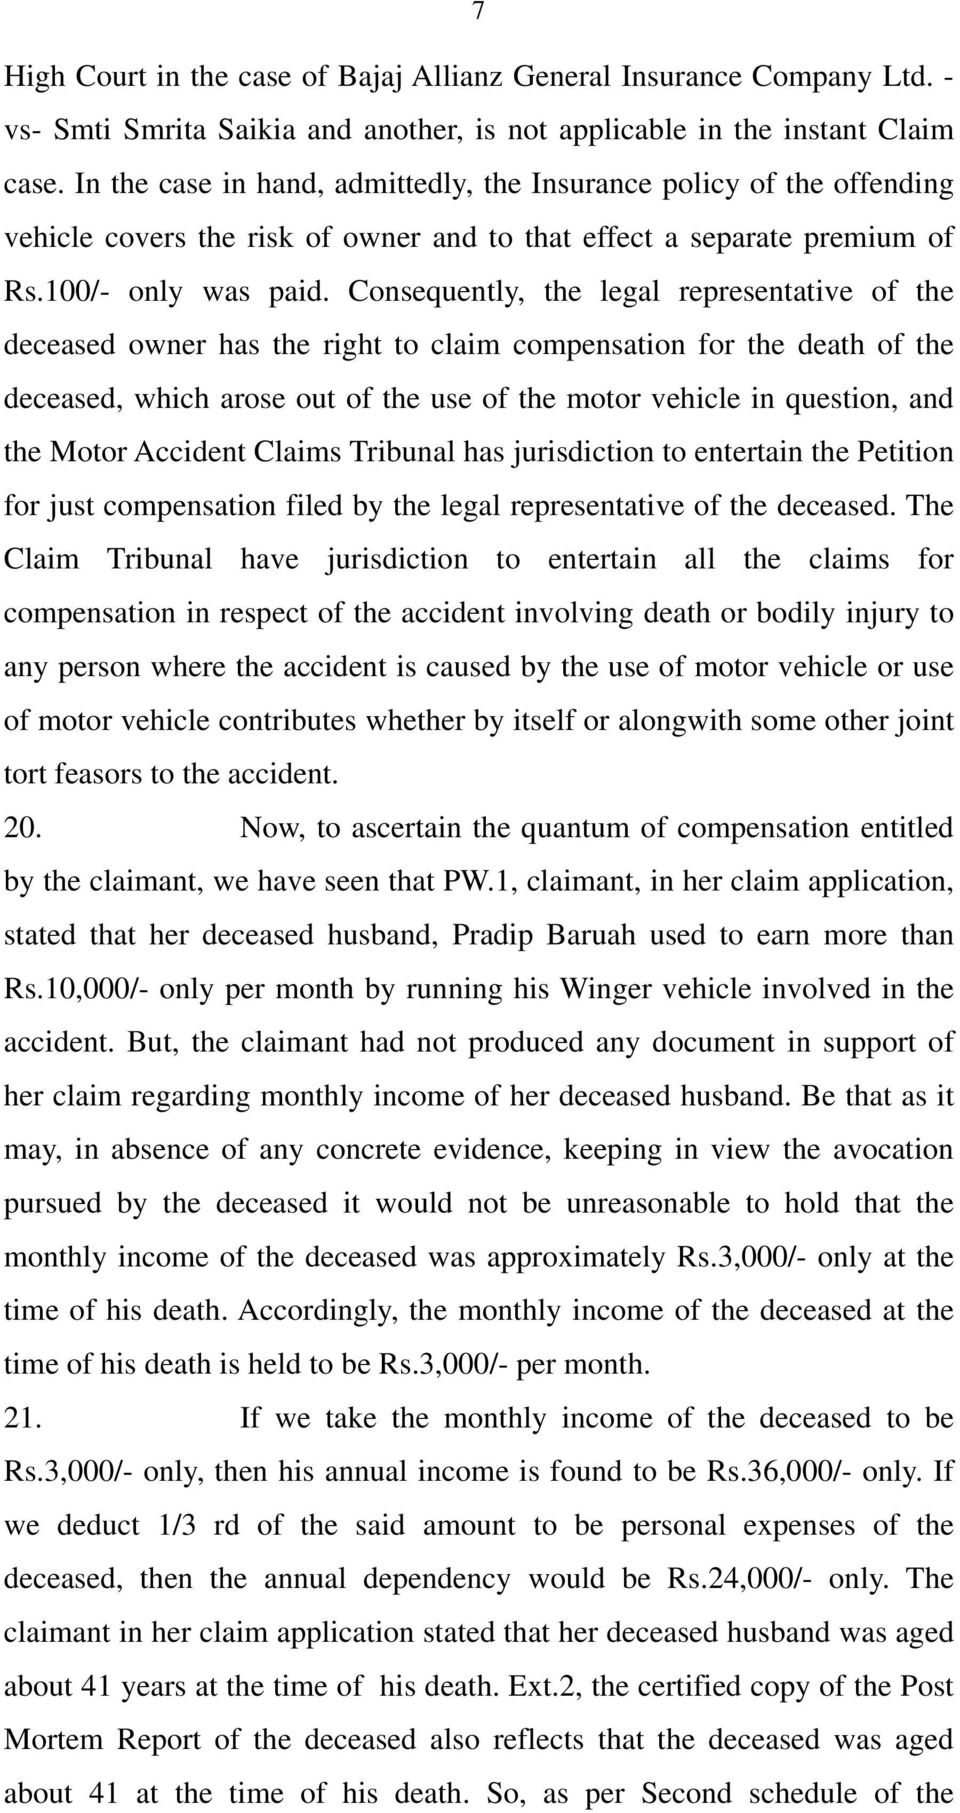 Consequently, the legal representative of the deceased owner has the right to claim compensation for the death of the deceased, which arose out of the use of the motor vehicle in question, and the